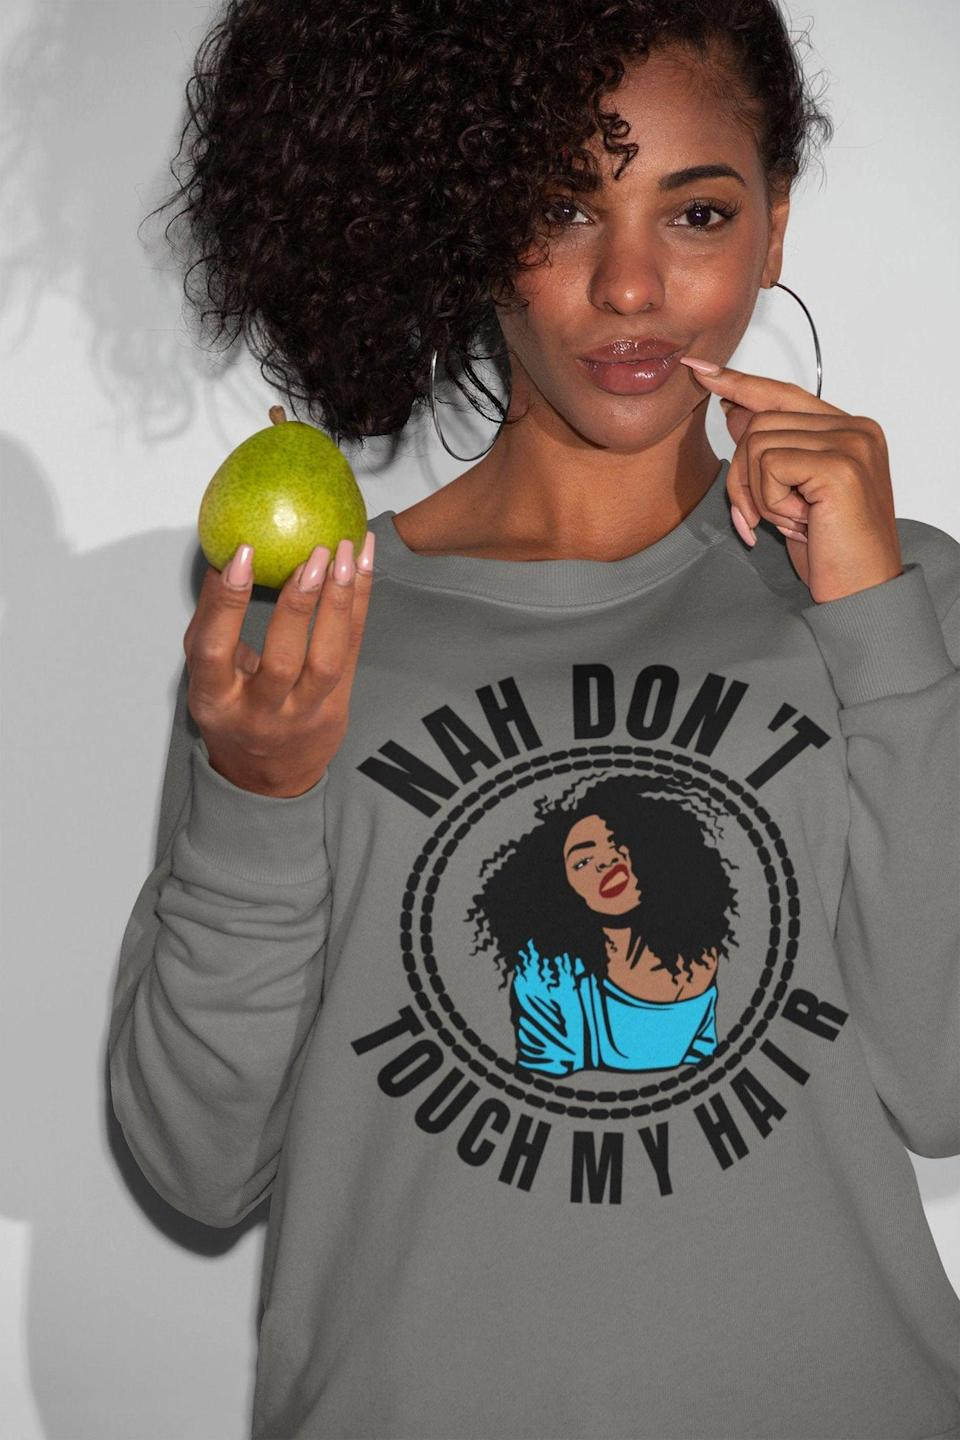 <p>This sweatshirt serves as a reminder that in any circumstances, regardless of race or relationship, do not touch someone's hair without permission.</p> <p><span>Nah Don't Touch My Hair Sweatshirt</span> ($44)</p>